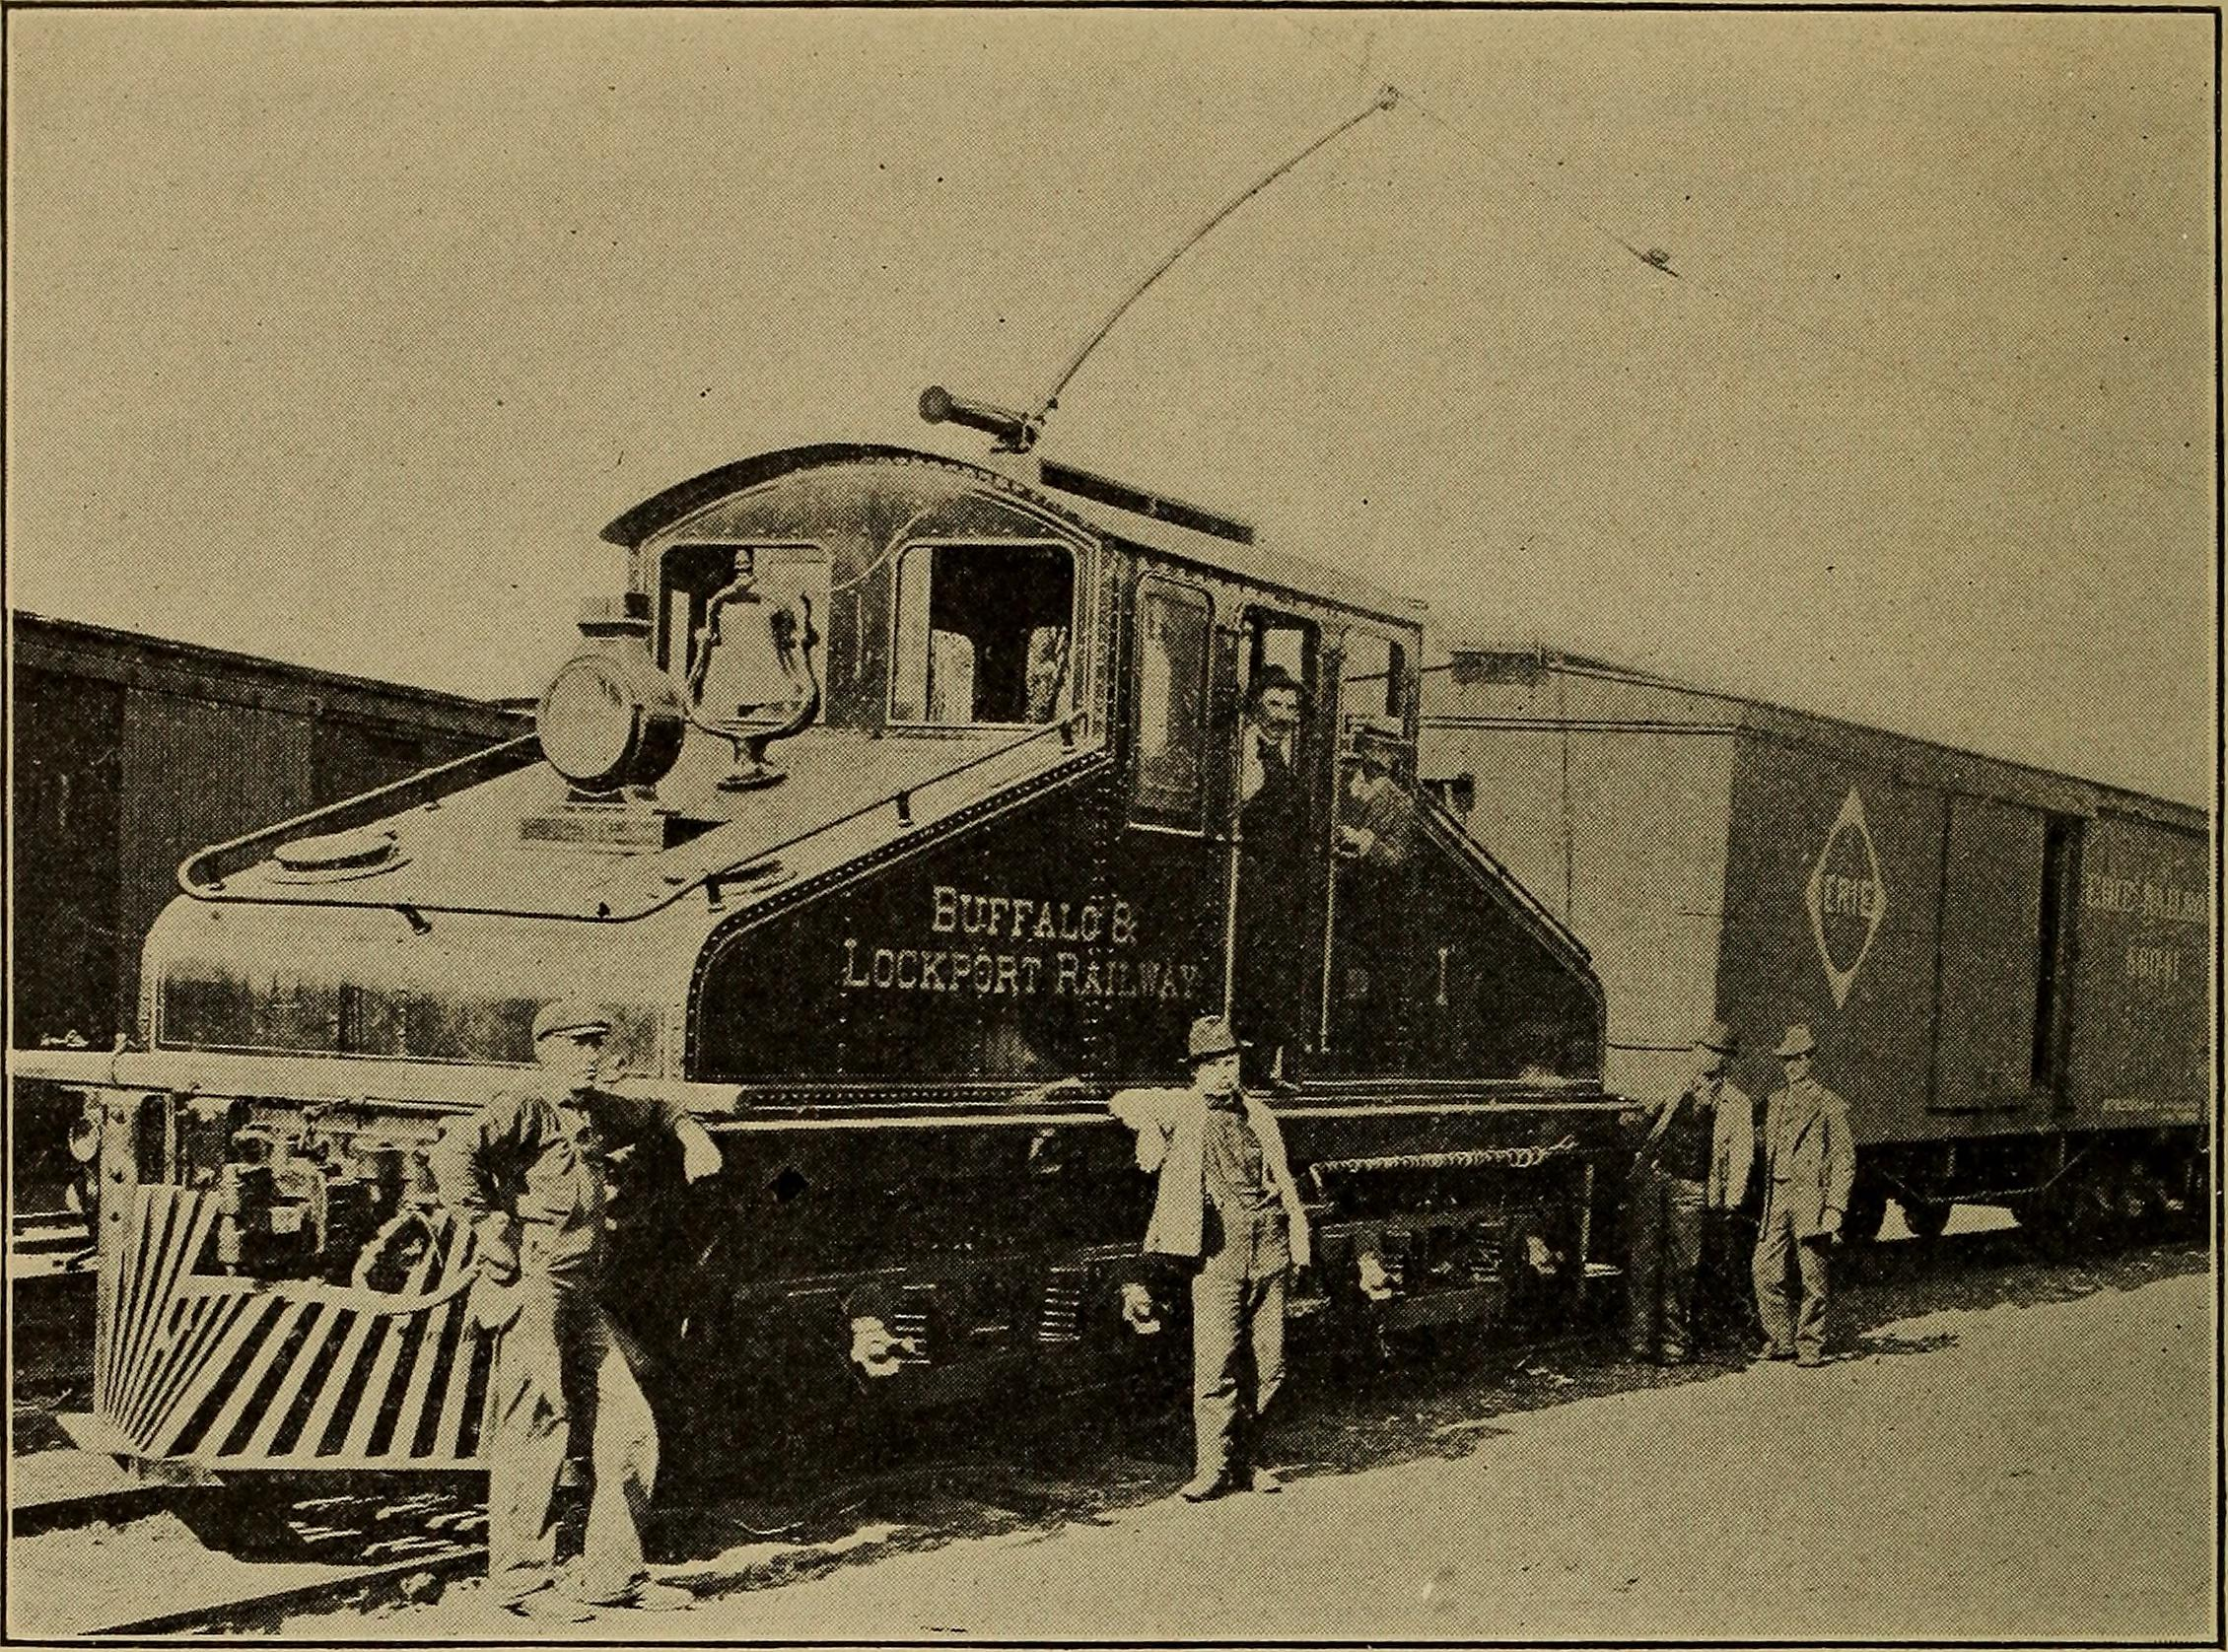 Electric Railway Traction Best Secret Wiring Diagram Wiringdiagramoftractionsubstationfordummiesjpg File For Trains A Book Indian System Power Substation